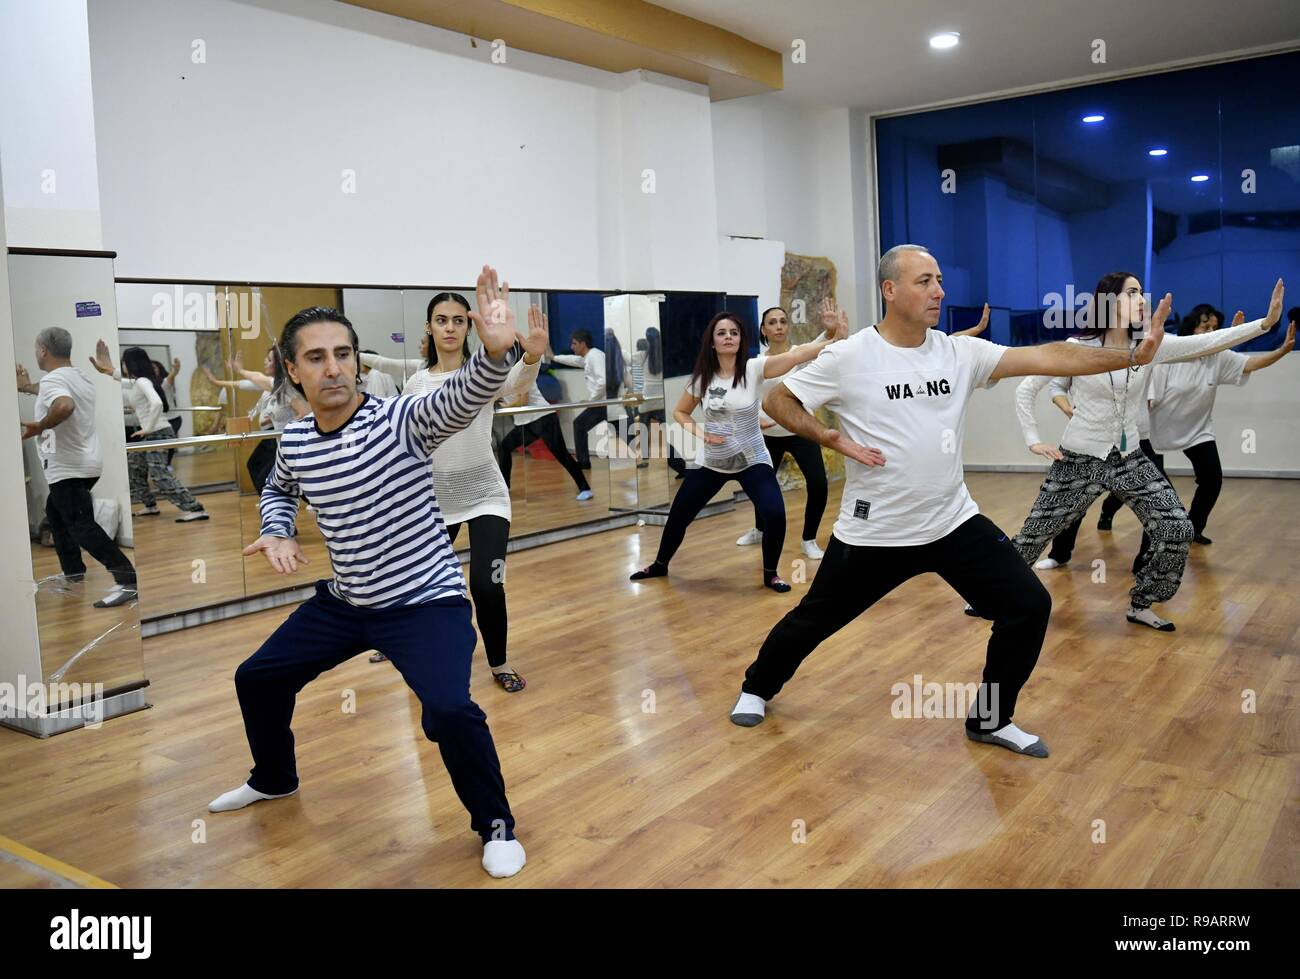 Damascus. 13th Dec, 2018. A group of Syrians practice Tai Chi in Damascus, Syria, Dec.13, 2018. TO GO WITH Feature: Syrians find escape from stressful war by practising Tai Chi. Credit: Ammar Safarjalani/Xinhua/Alamy Live News - Stock Image